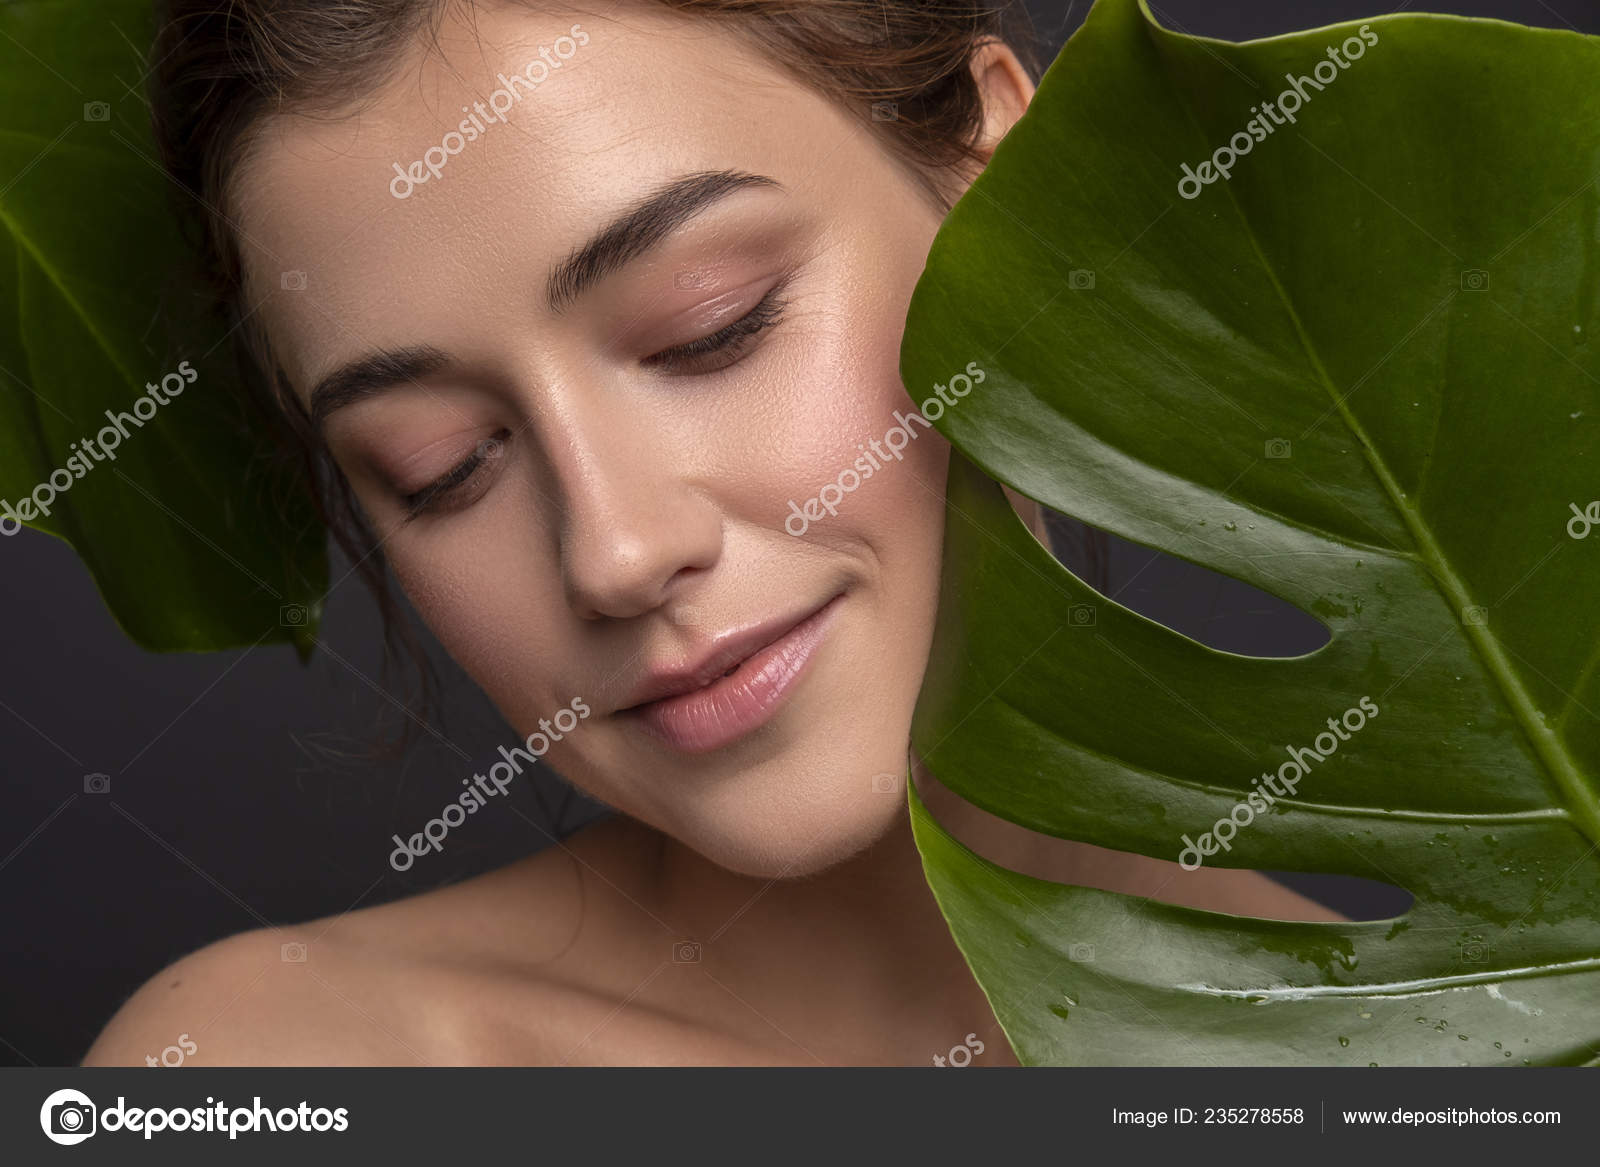 Cute Ordinary Young Woman Posing Monstera Tropical Leafs Fresh Clean Stock Photo C Annademy 235278558